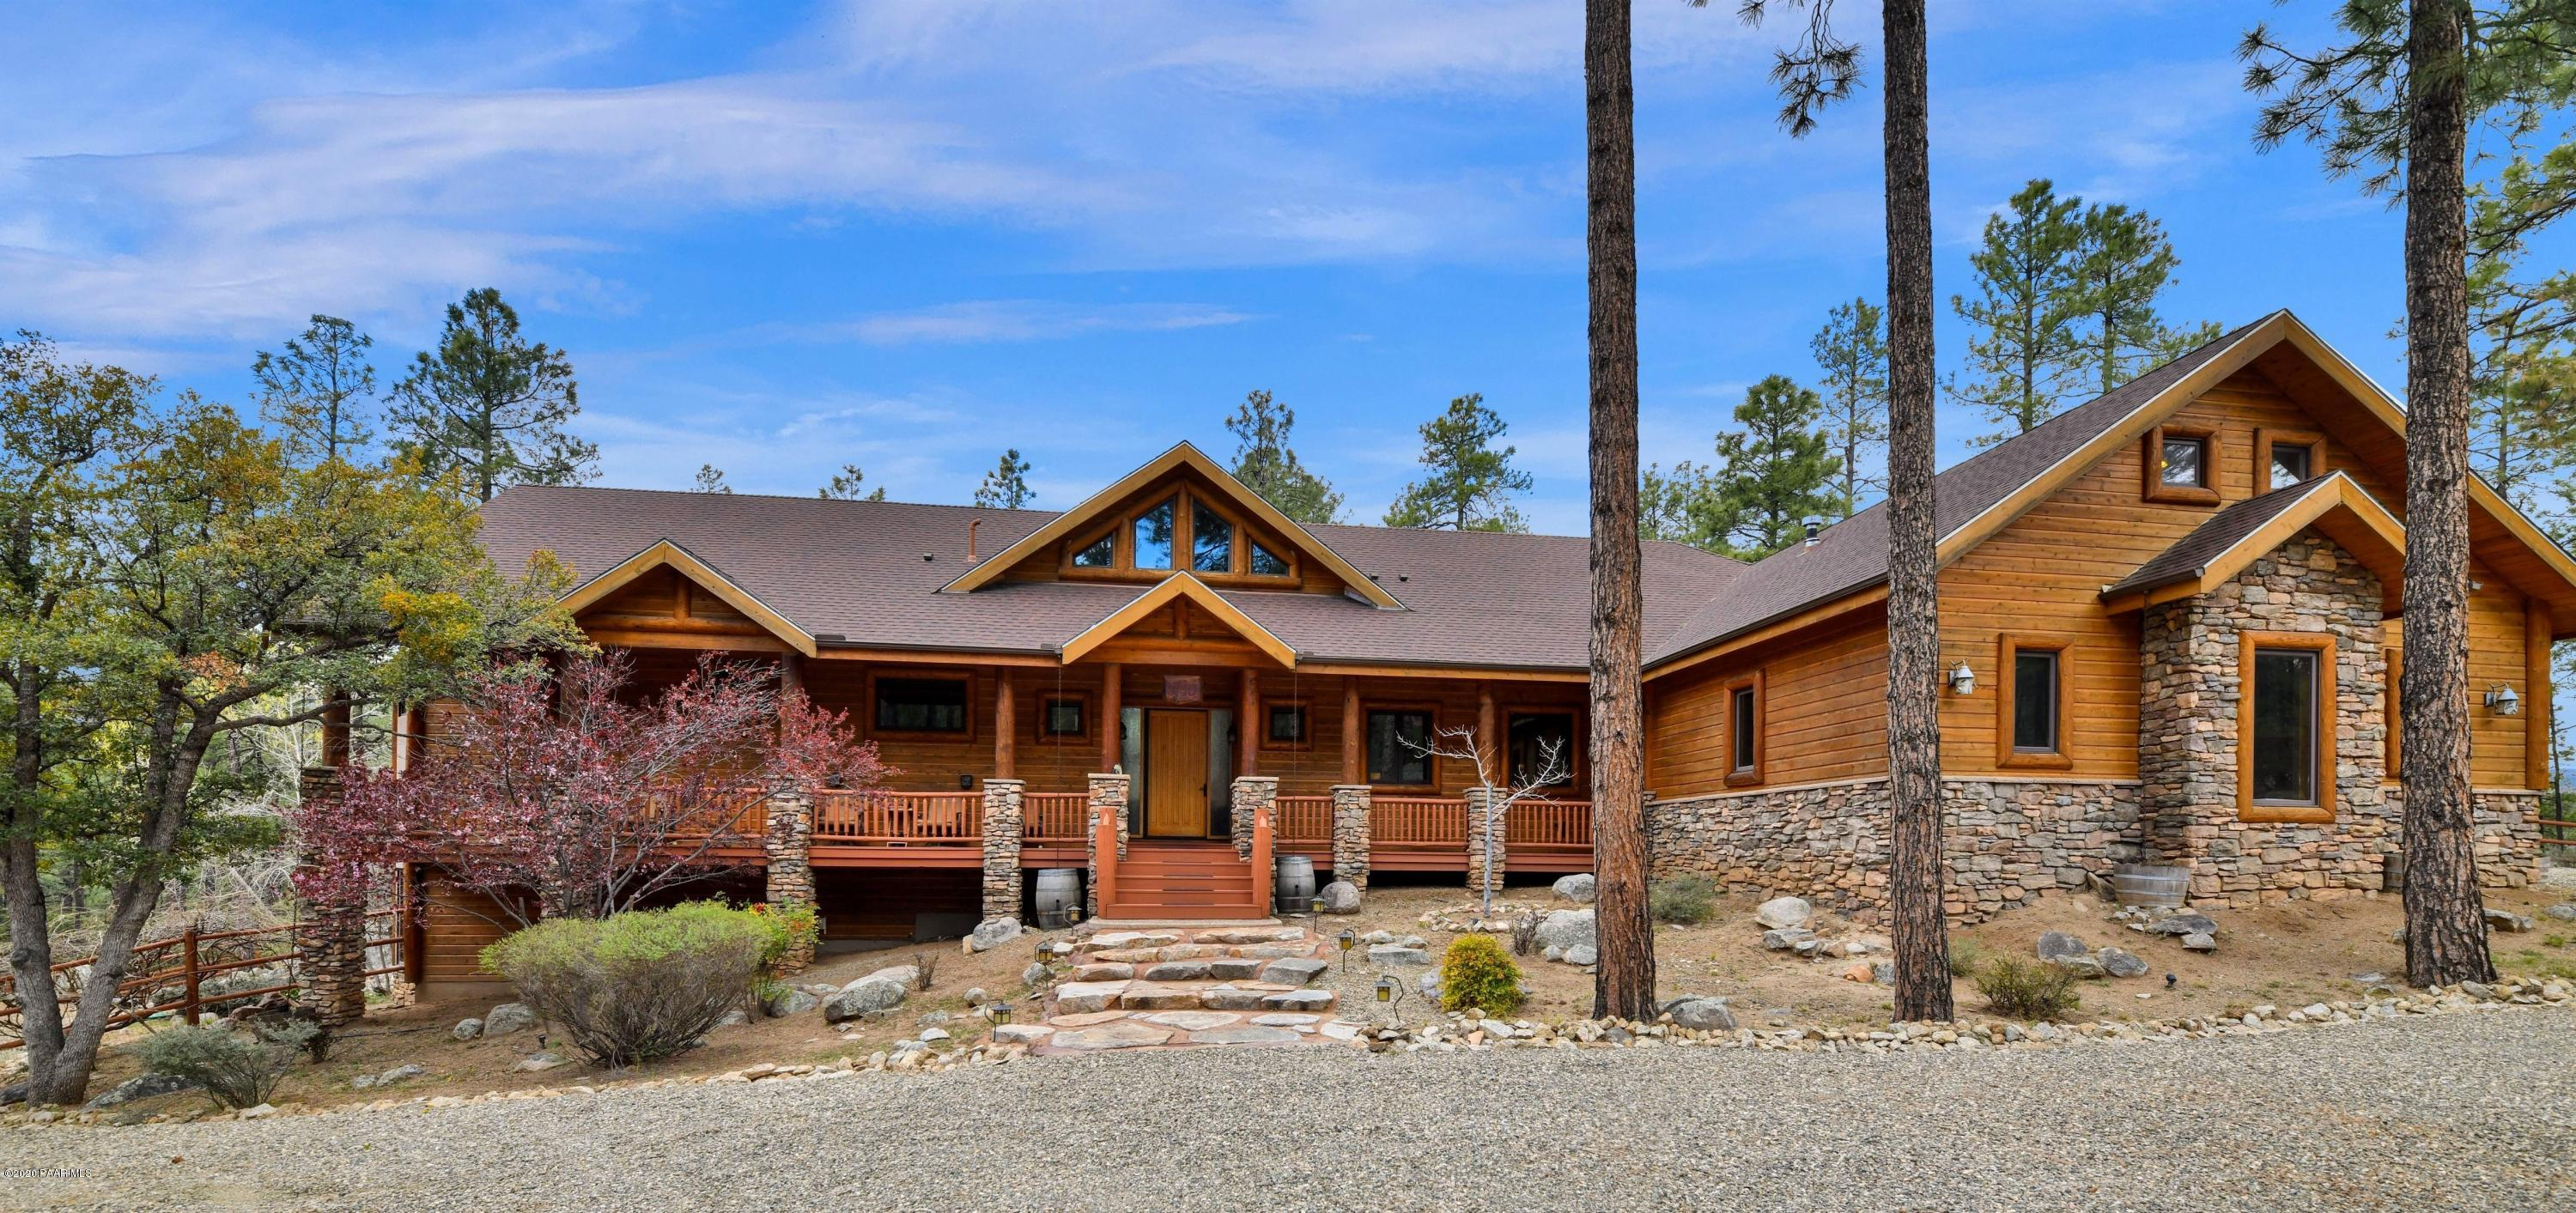 5140 E Charcoal Kiln Road, Prescott, Arizona